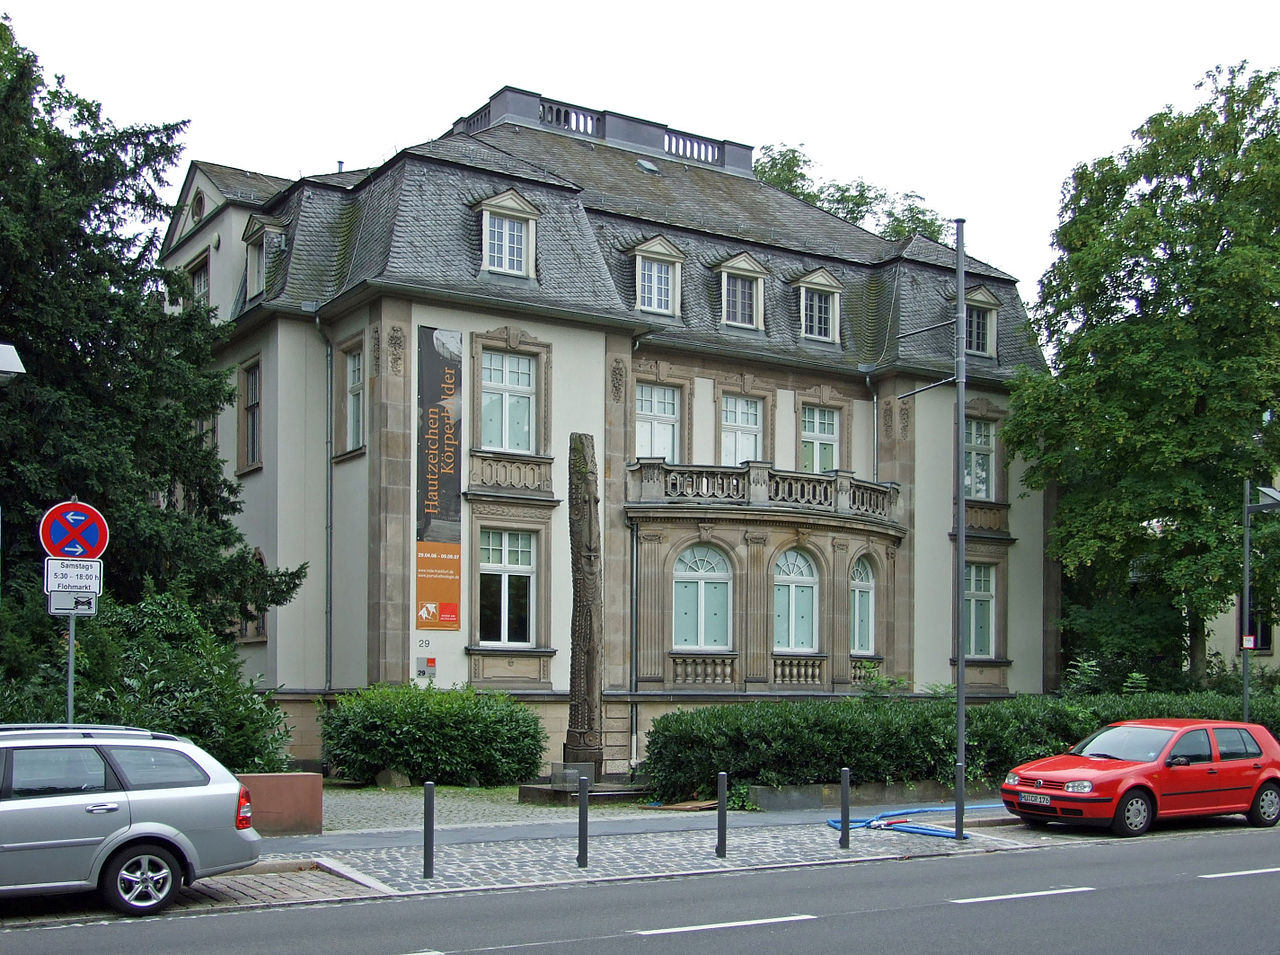 The exterior of the Weltkulturen Museum in Frankfurt, where Clémentine Deliss was the director from 2010 to 2015. (photo by dontworry, via Wikimedia Commons)